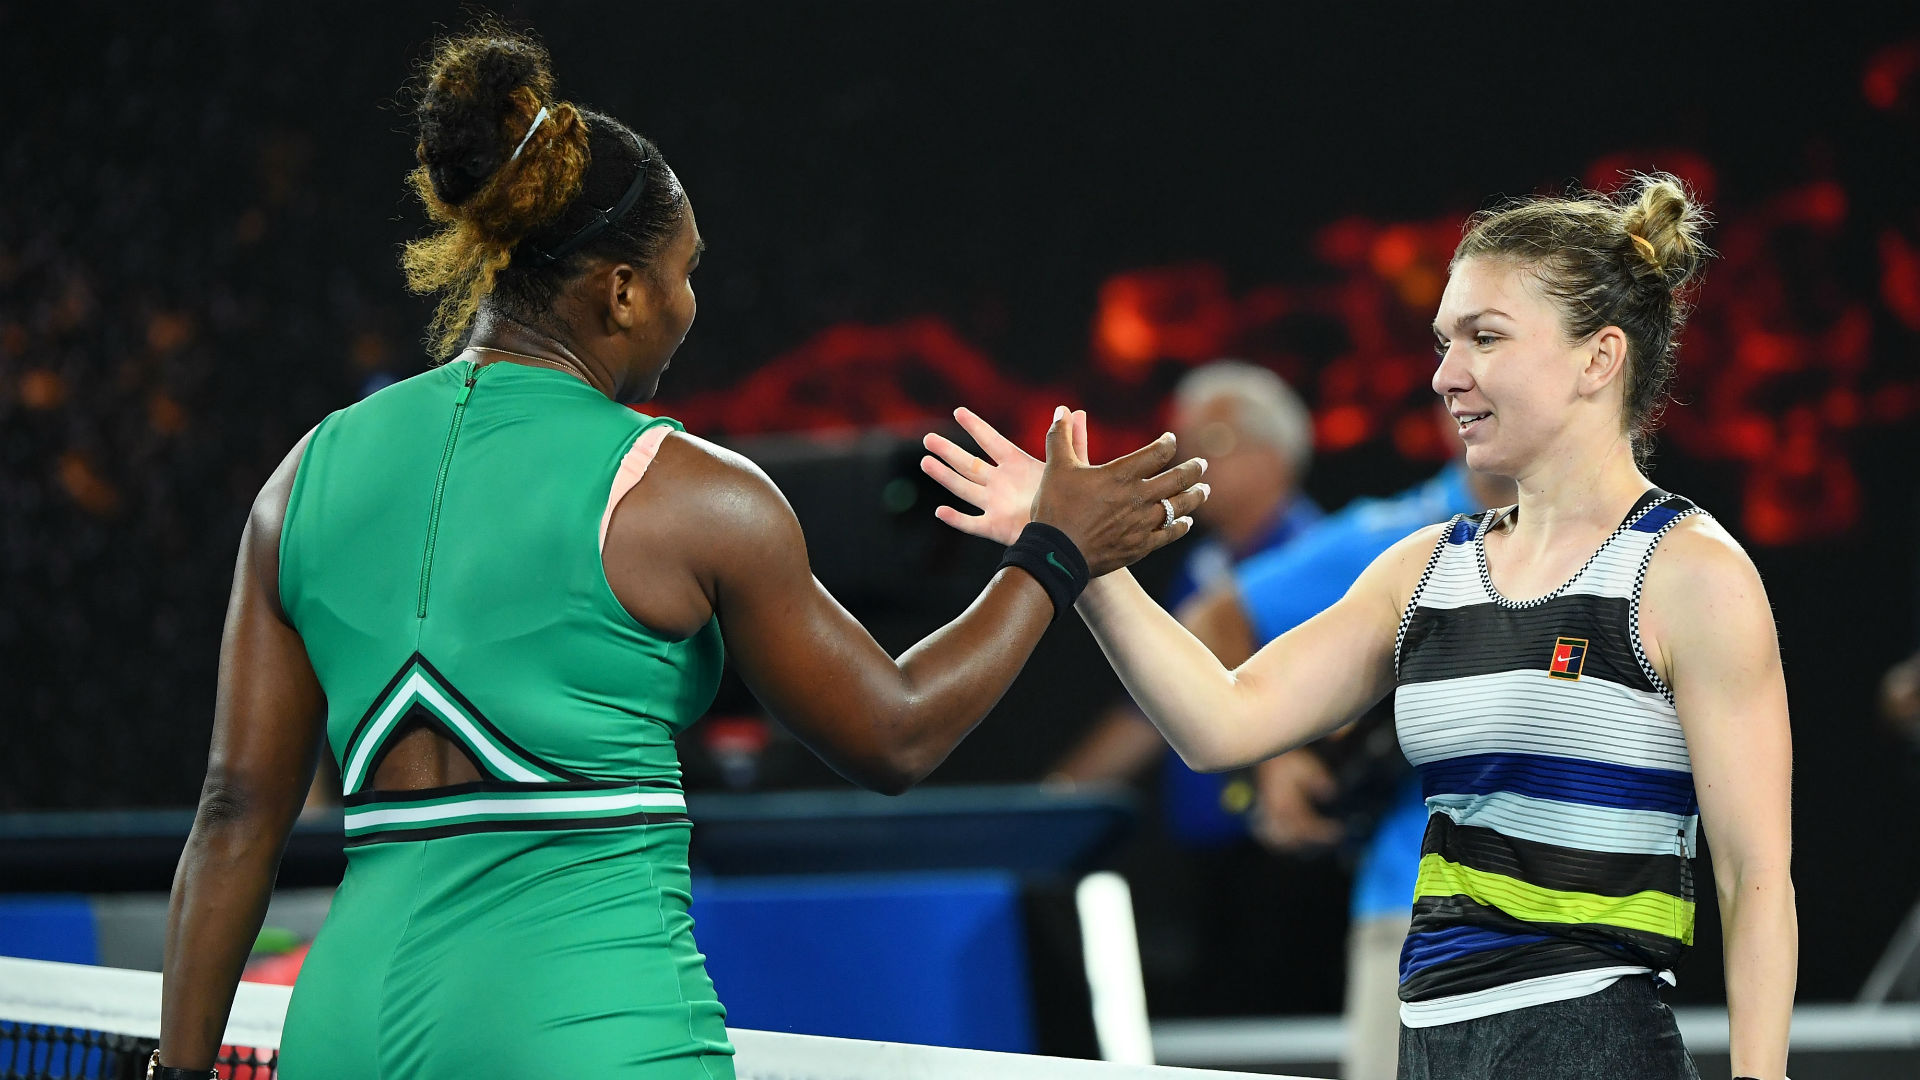 Former world number ones Serena Williams and Simona Halep say keeping their composure will be key when they meet in the final at Wimbledon.